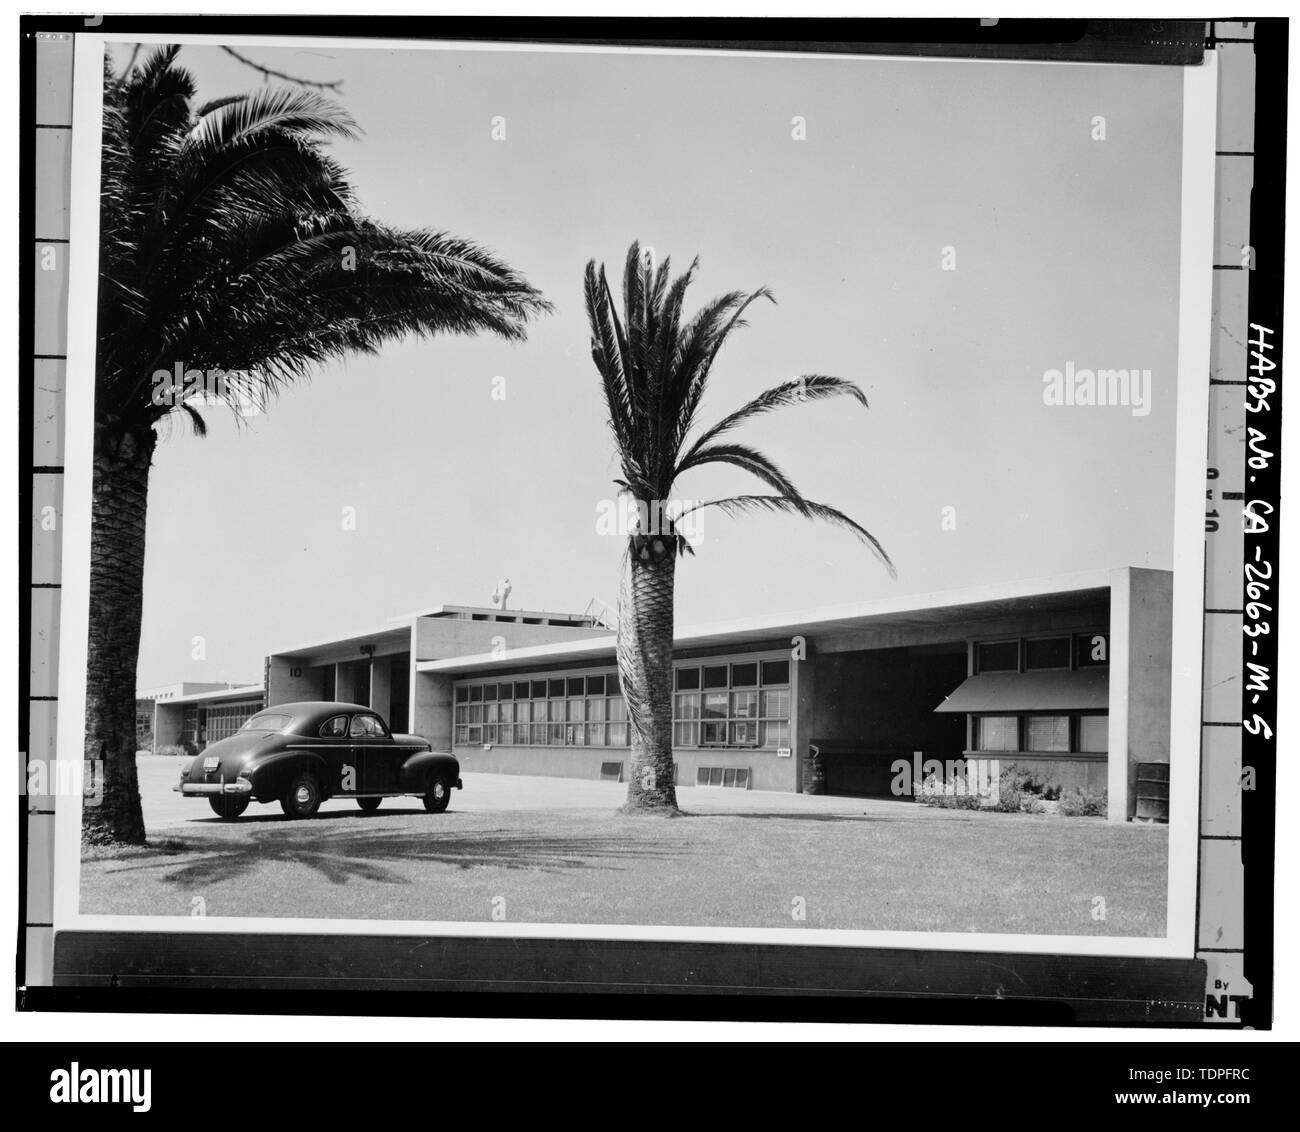 (original located in Command Historian's Archives, Naval Facilities Engineering Command, Port Hueneme, California). George E. Kidder-Smith, photographer, April 1945, Photograph -109-1. BUILDING 10, SOUTH SIDE, FACING NORTHWEST - Roosevelt Base, Fleet Landing Building, Bounded by Richardson and Pratt Avenues, Maryland and West Virginia Streets, Long Beach, Los Angeles County, CA - Stock Image